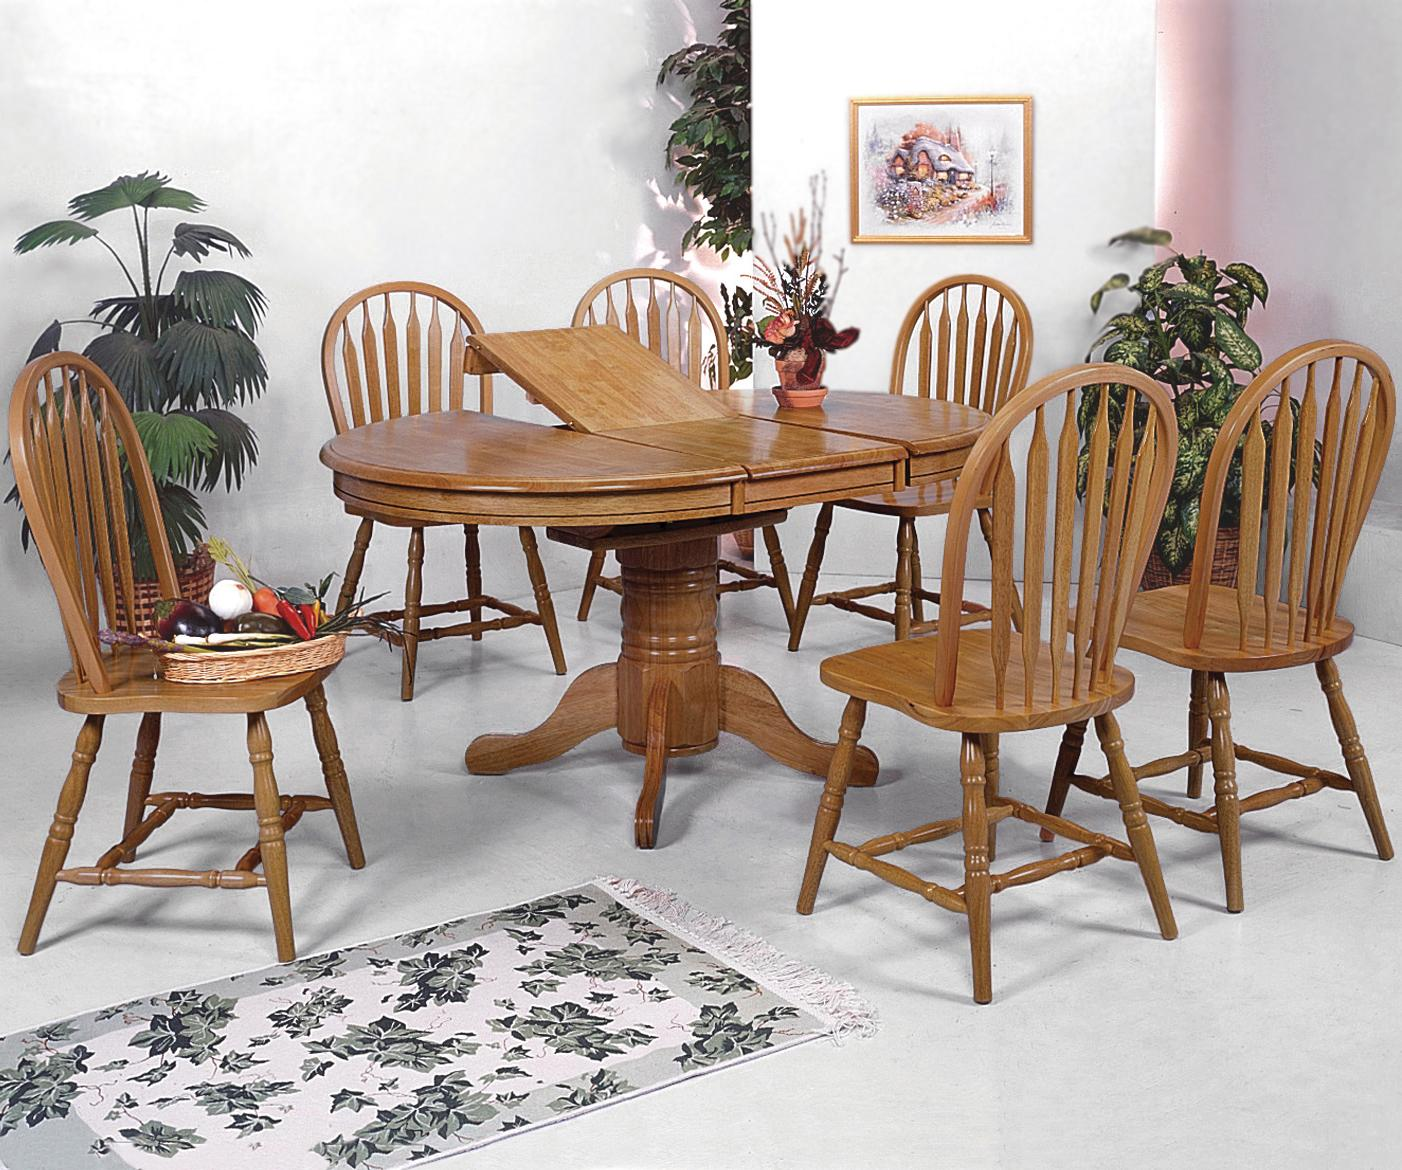 dining table set 6 chairs swivel chair ladder tree stand crown mark windsor solid 7 piece oval and side